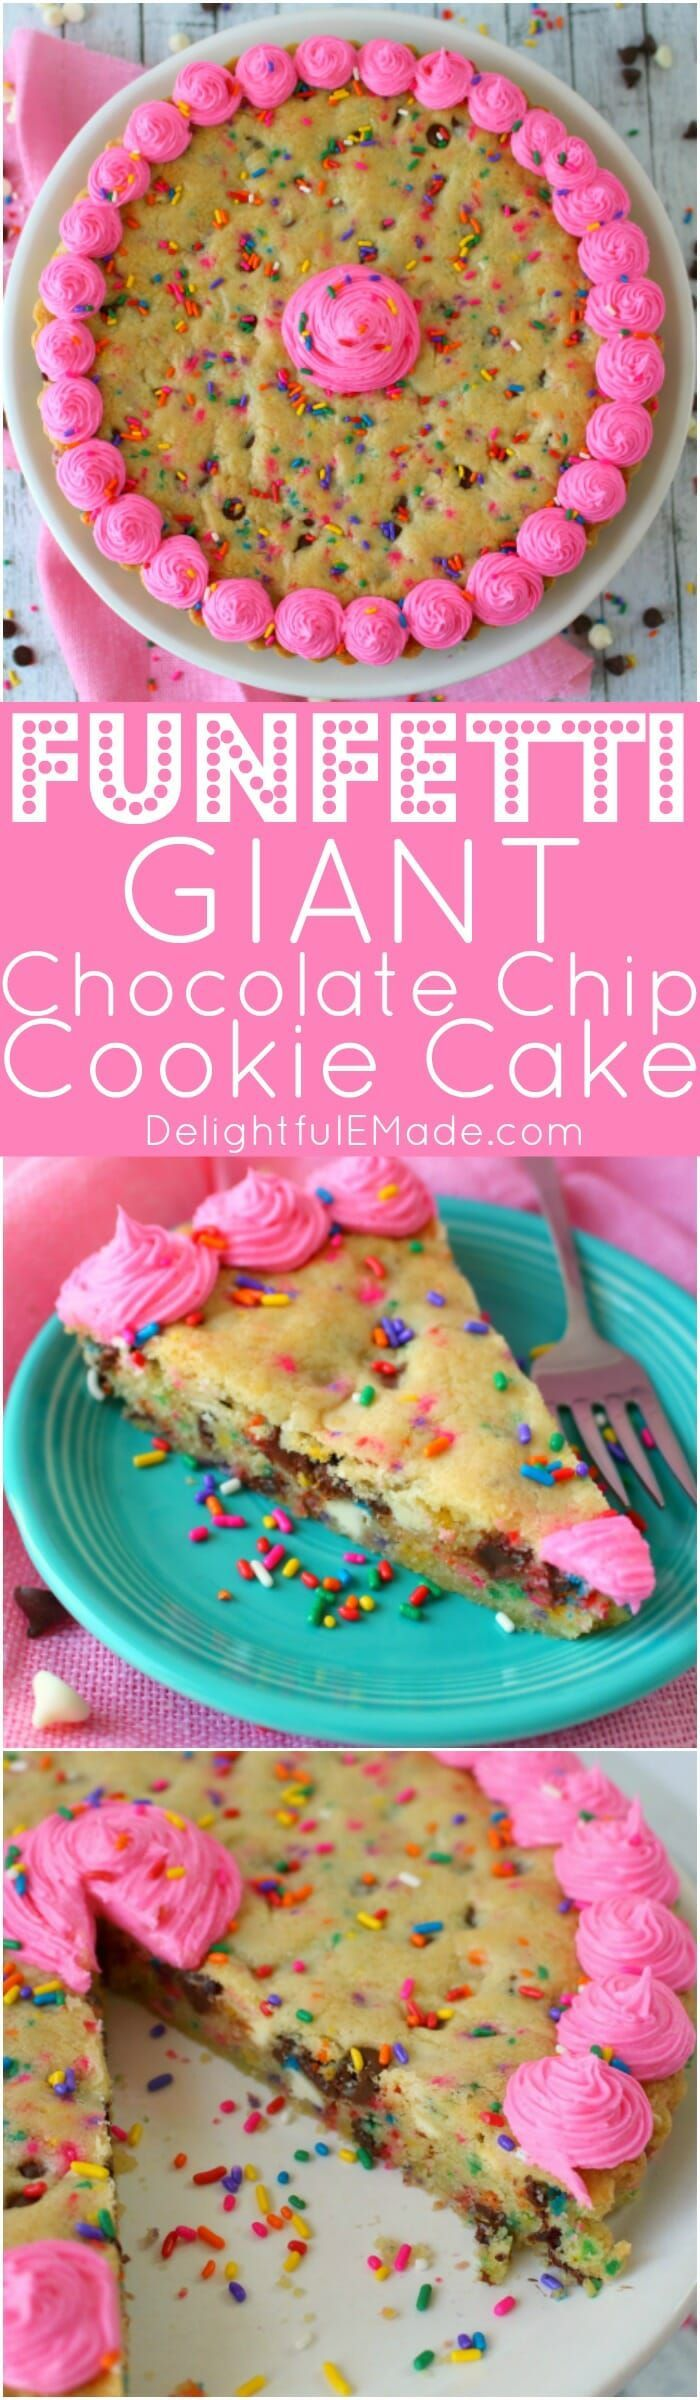 this funfetti giant chocolate chip cookie cake has party written all over it mak chocolate chip cookie cake giant chocolate chip cookie chocolate chip cookies pinterest